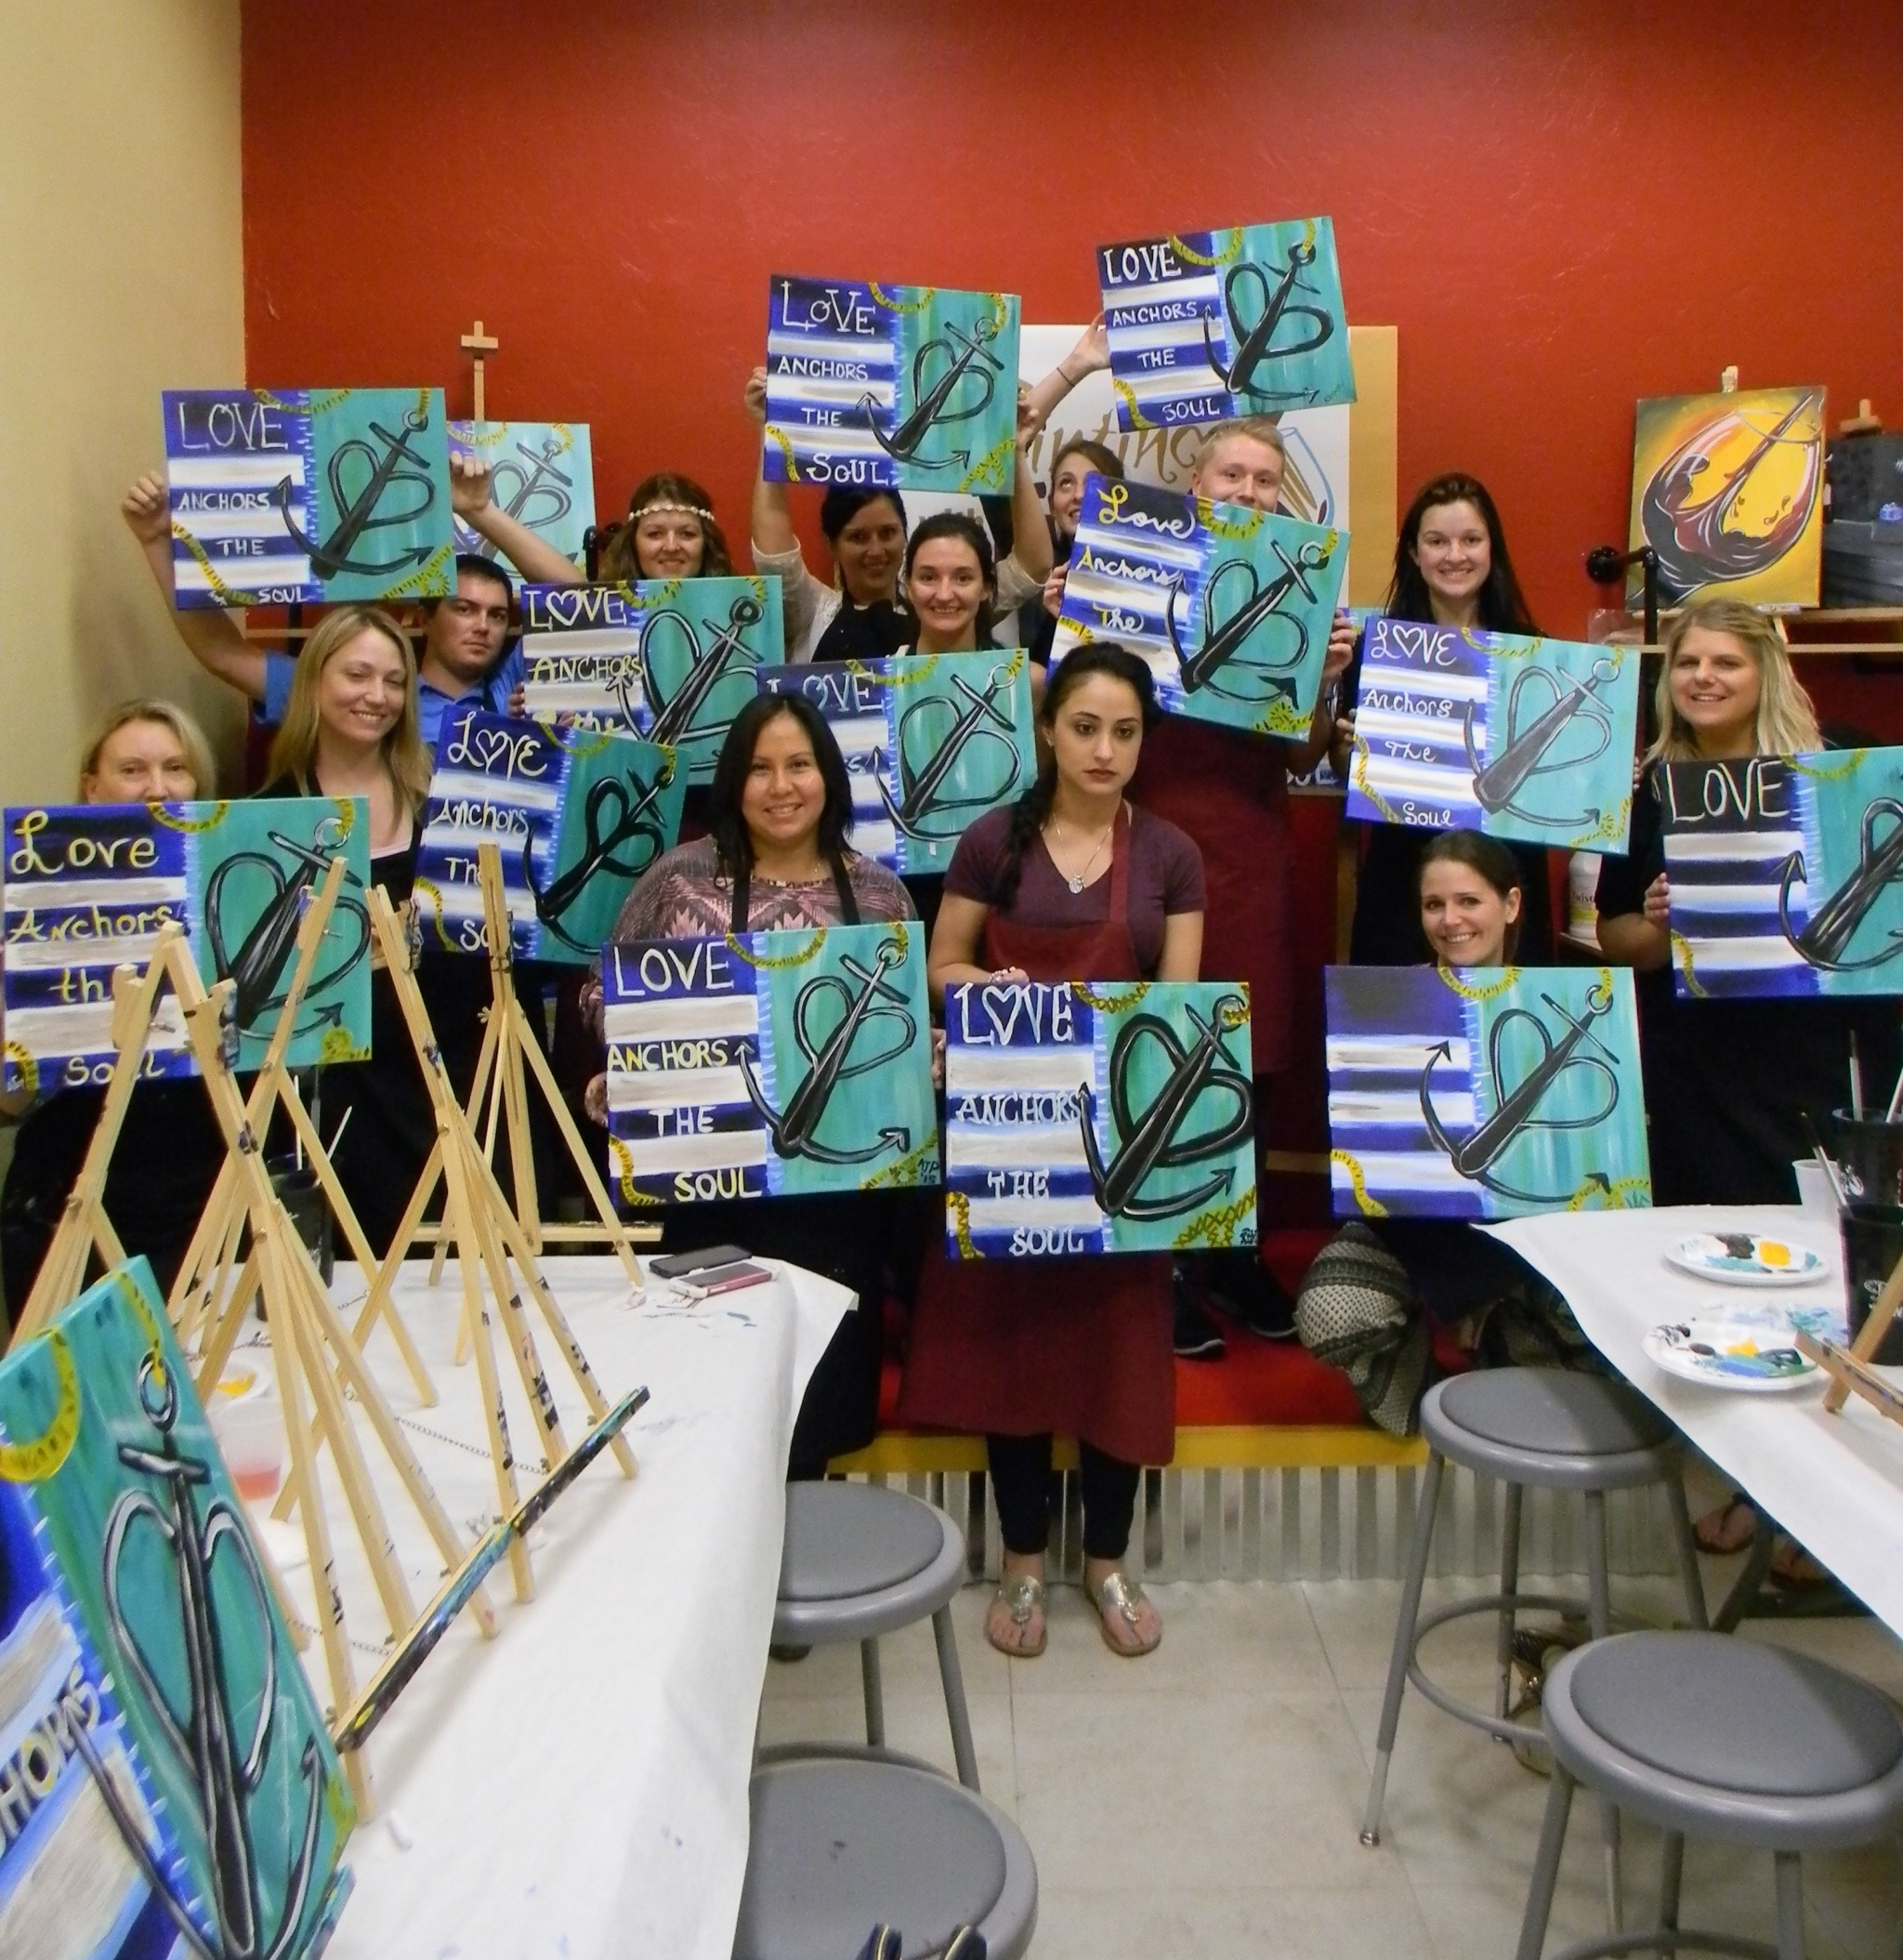 Fun Art At Painting With A Twist In Fort Myers 365 Things To Do In Southwest Florida